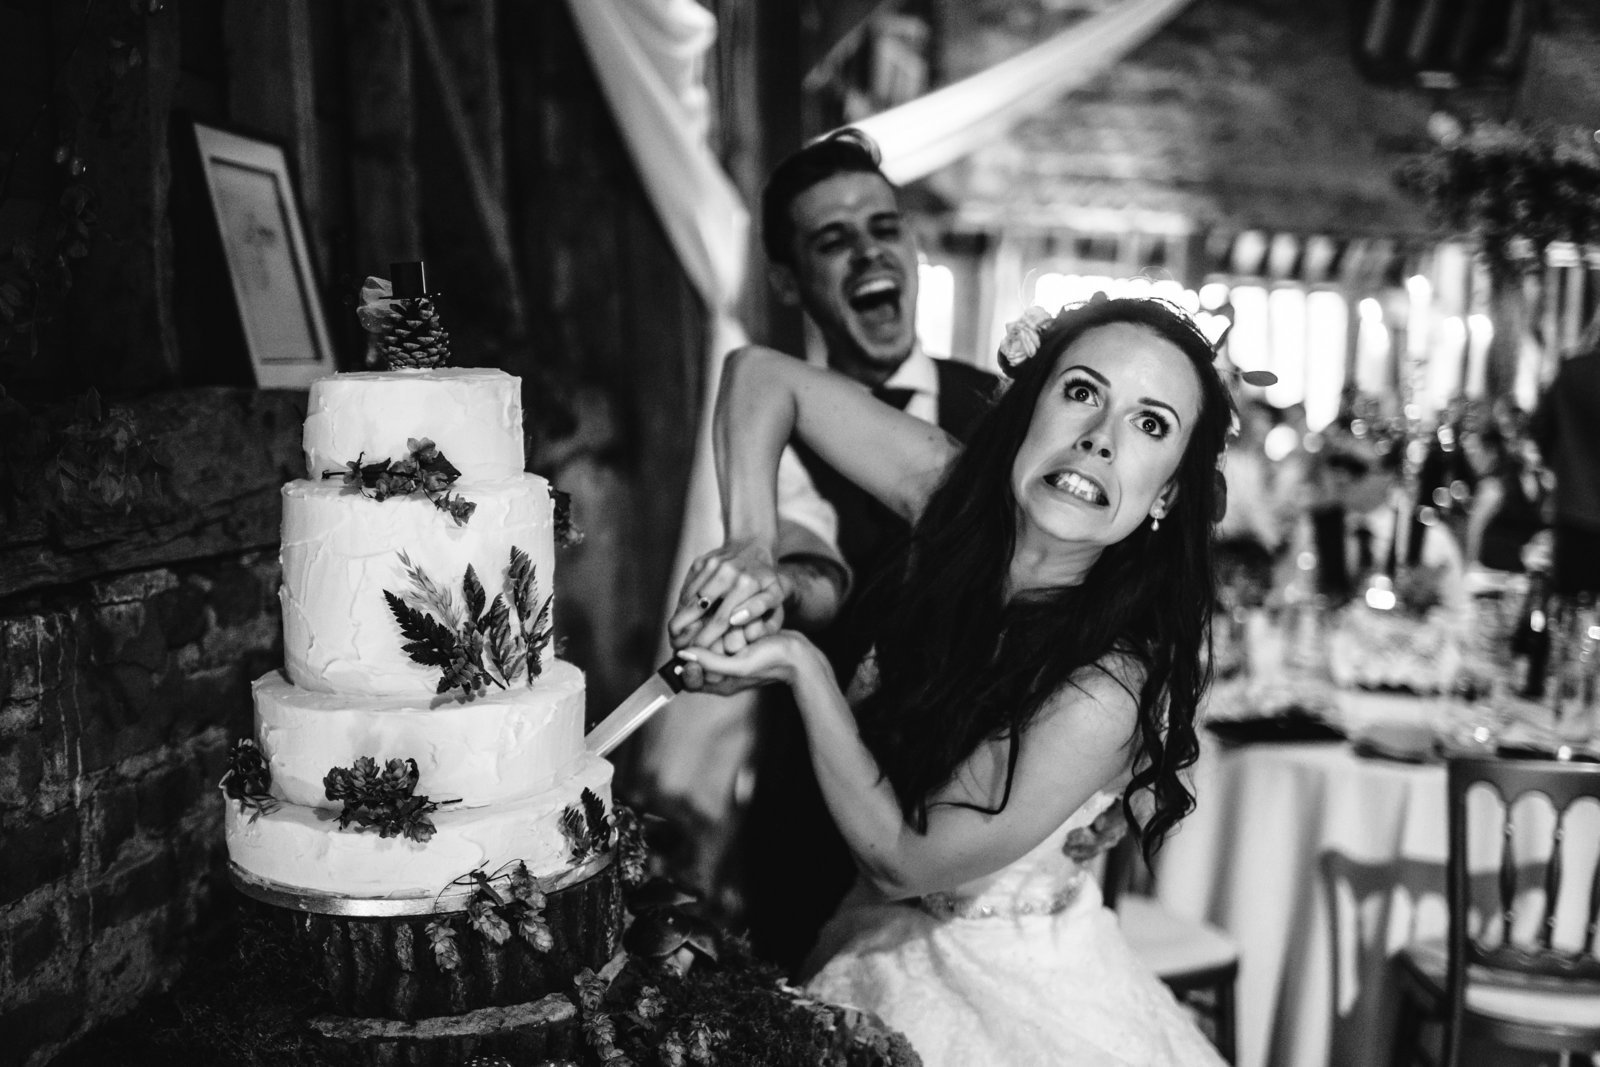 A Bride pulls a funny face while cutting her wedding cake at Norfolk wedding venue Chaucer Barn